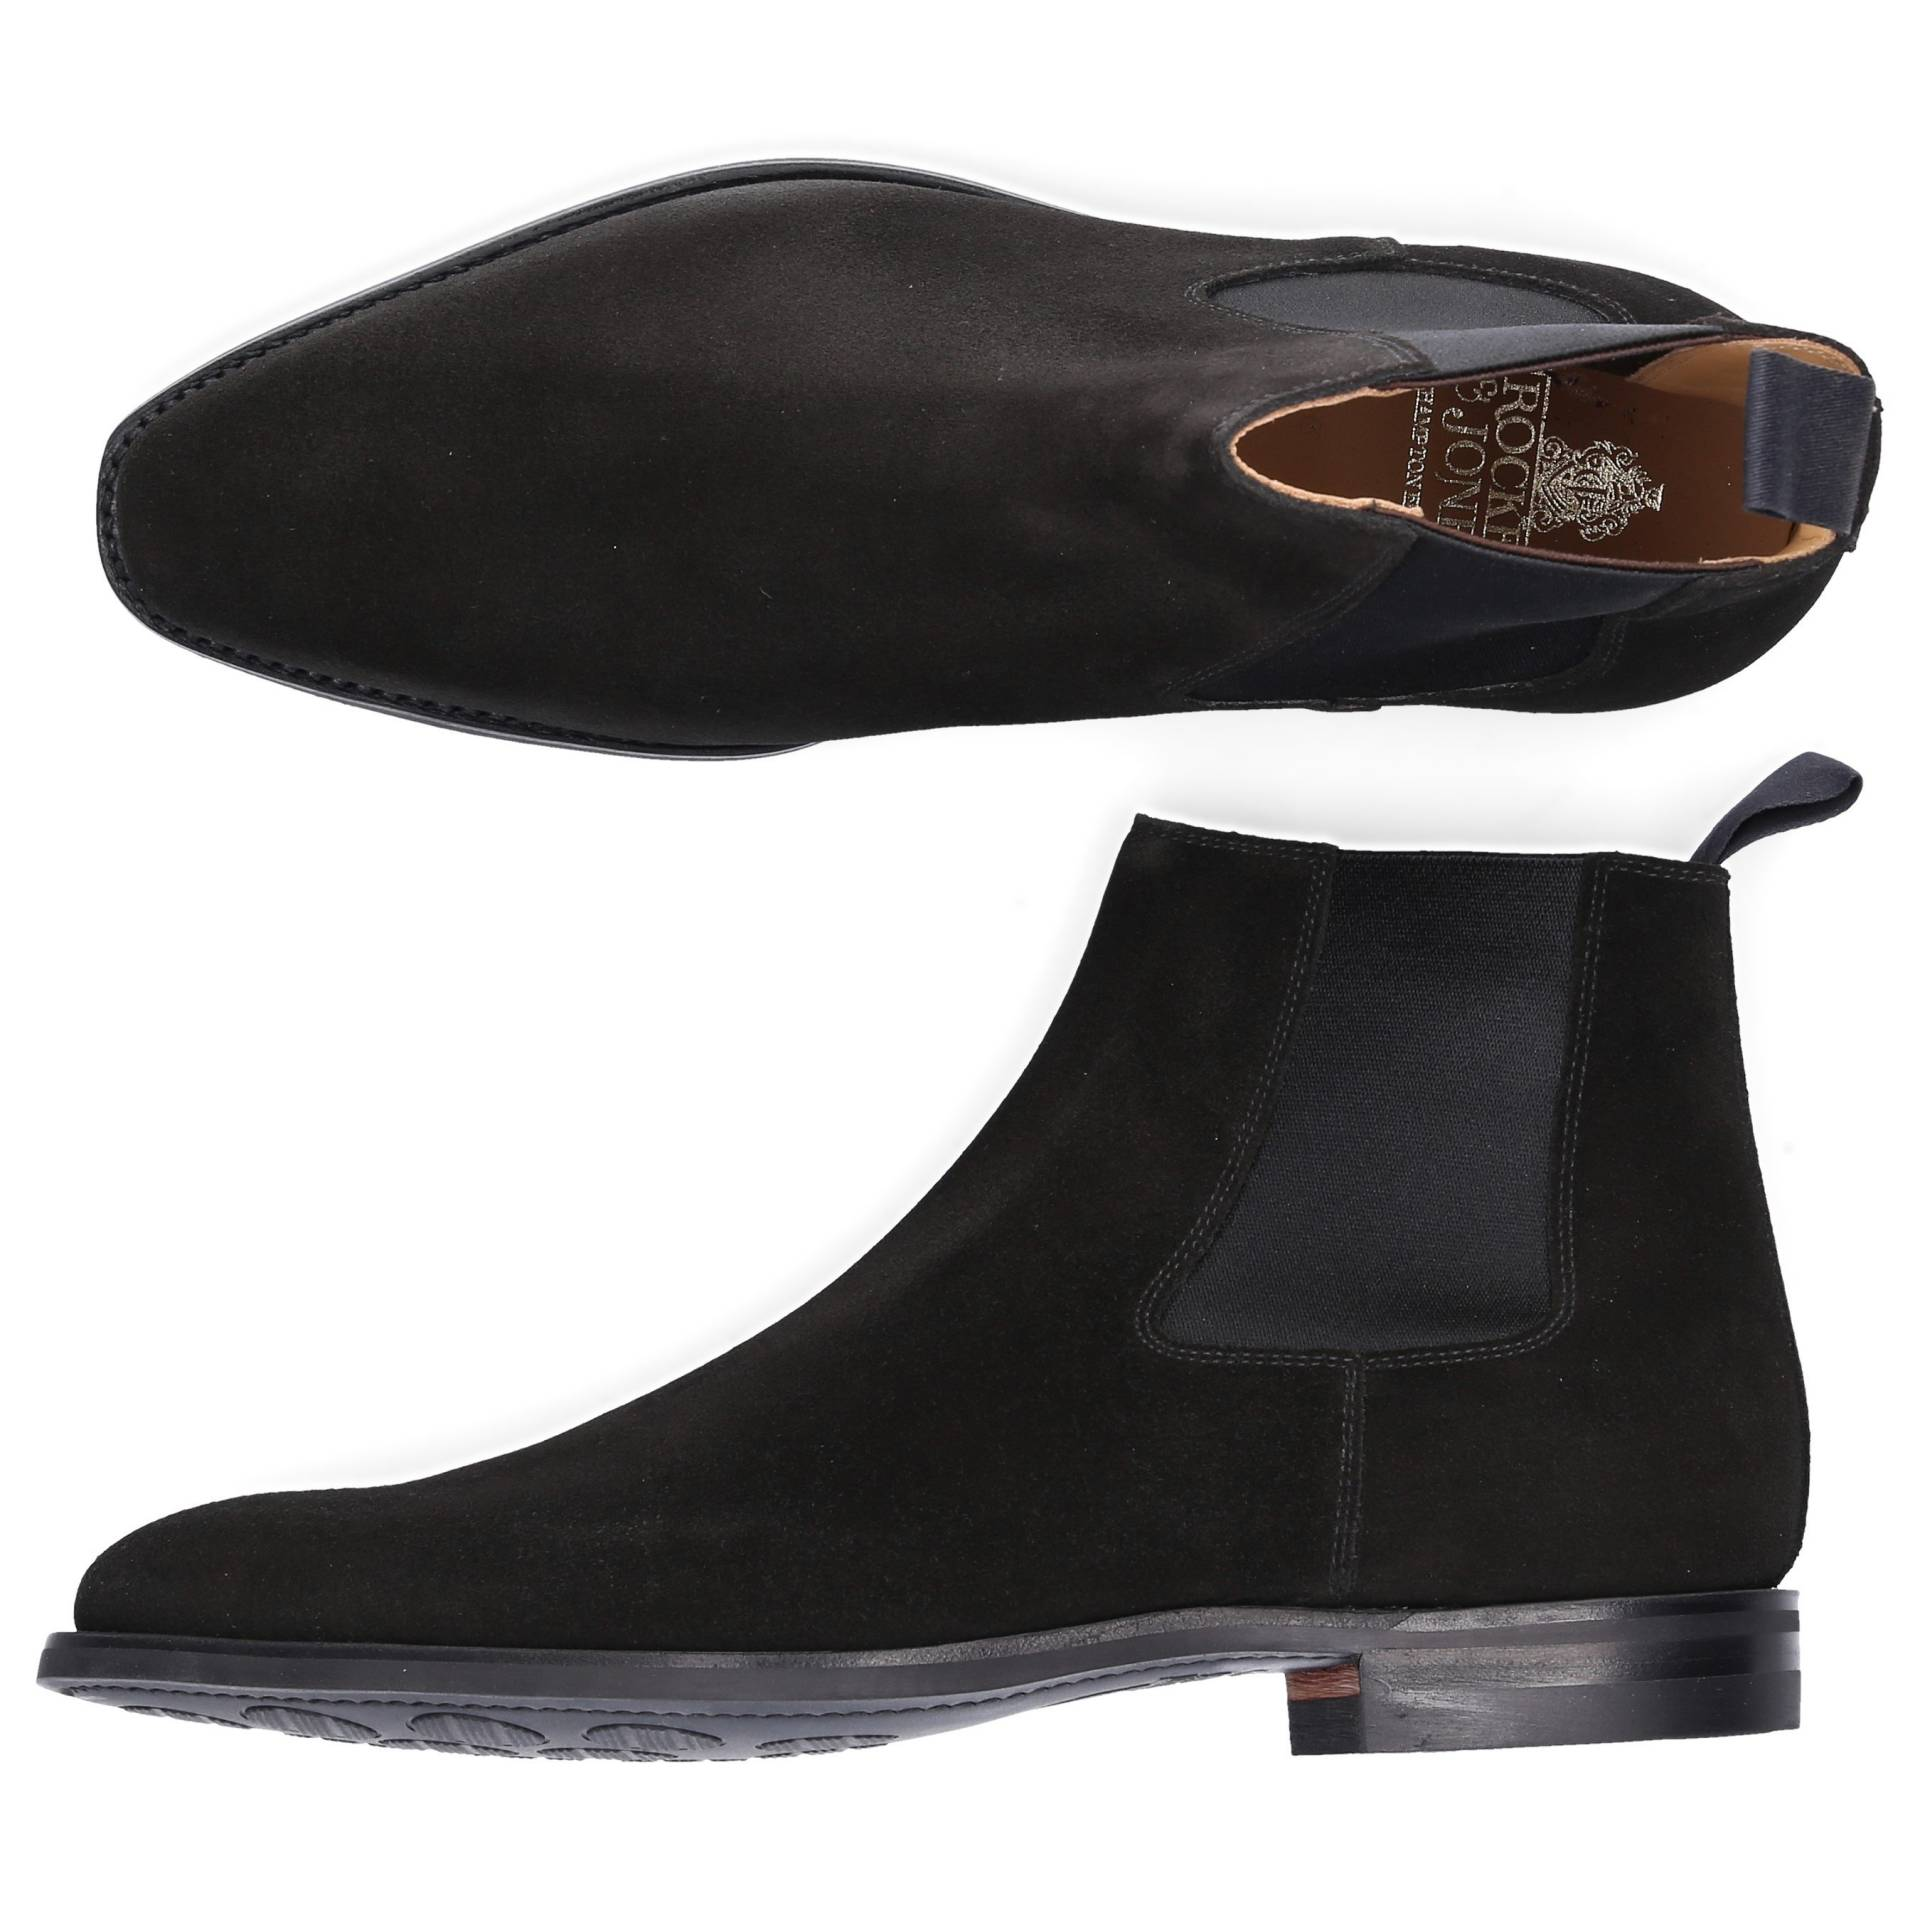 Crockett & Jones Chelsea Boots Kalbsleder  Veloursleder schwarz von Crockett & Jones